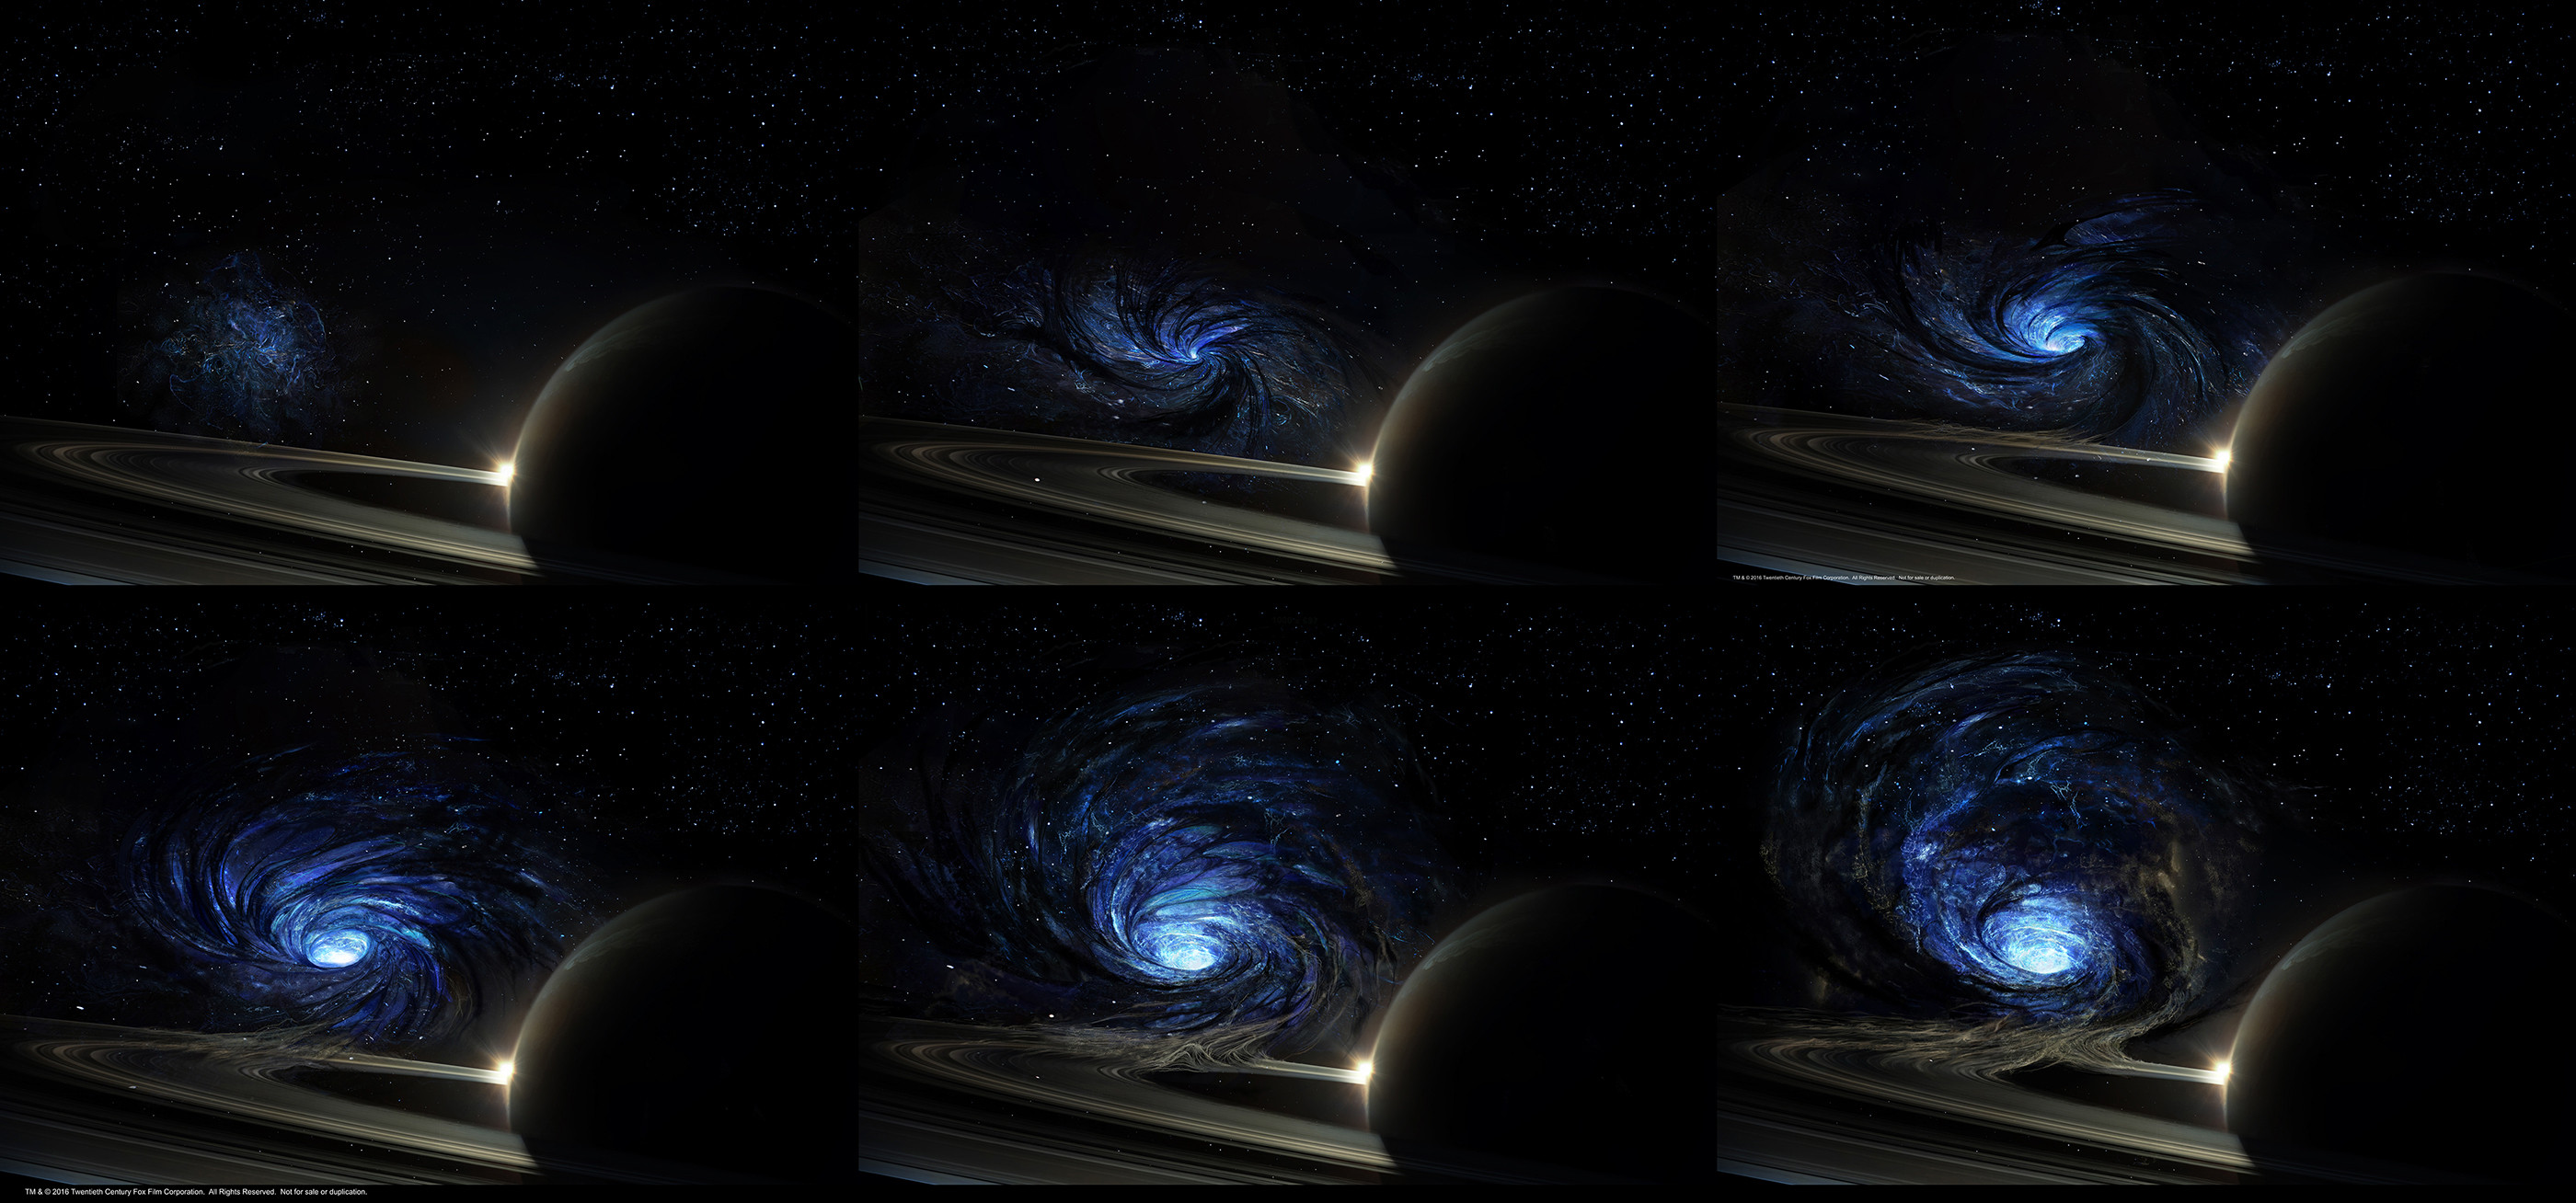 The opening of the wormhole on Saturn. Tendrils of dark matter create the connective tissue between our galaxy and the blue lit one from which the aliens come from.